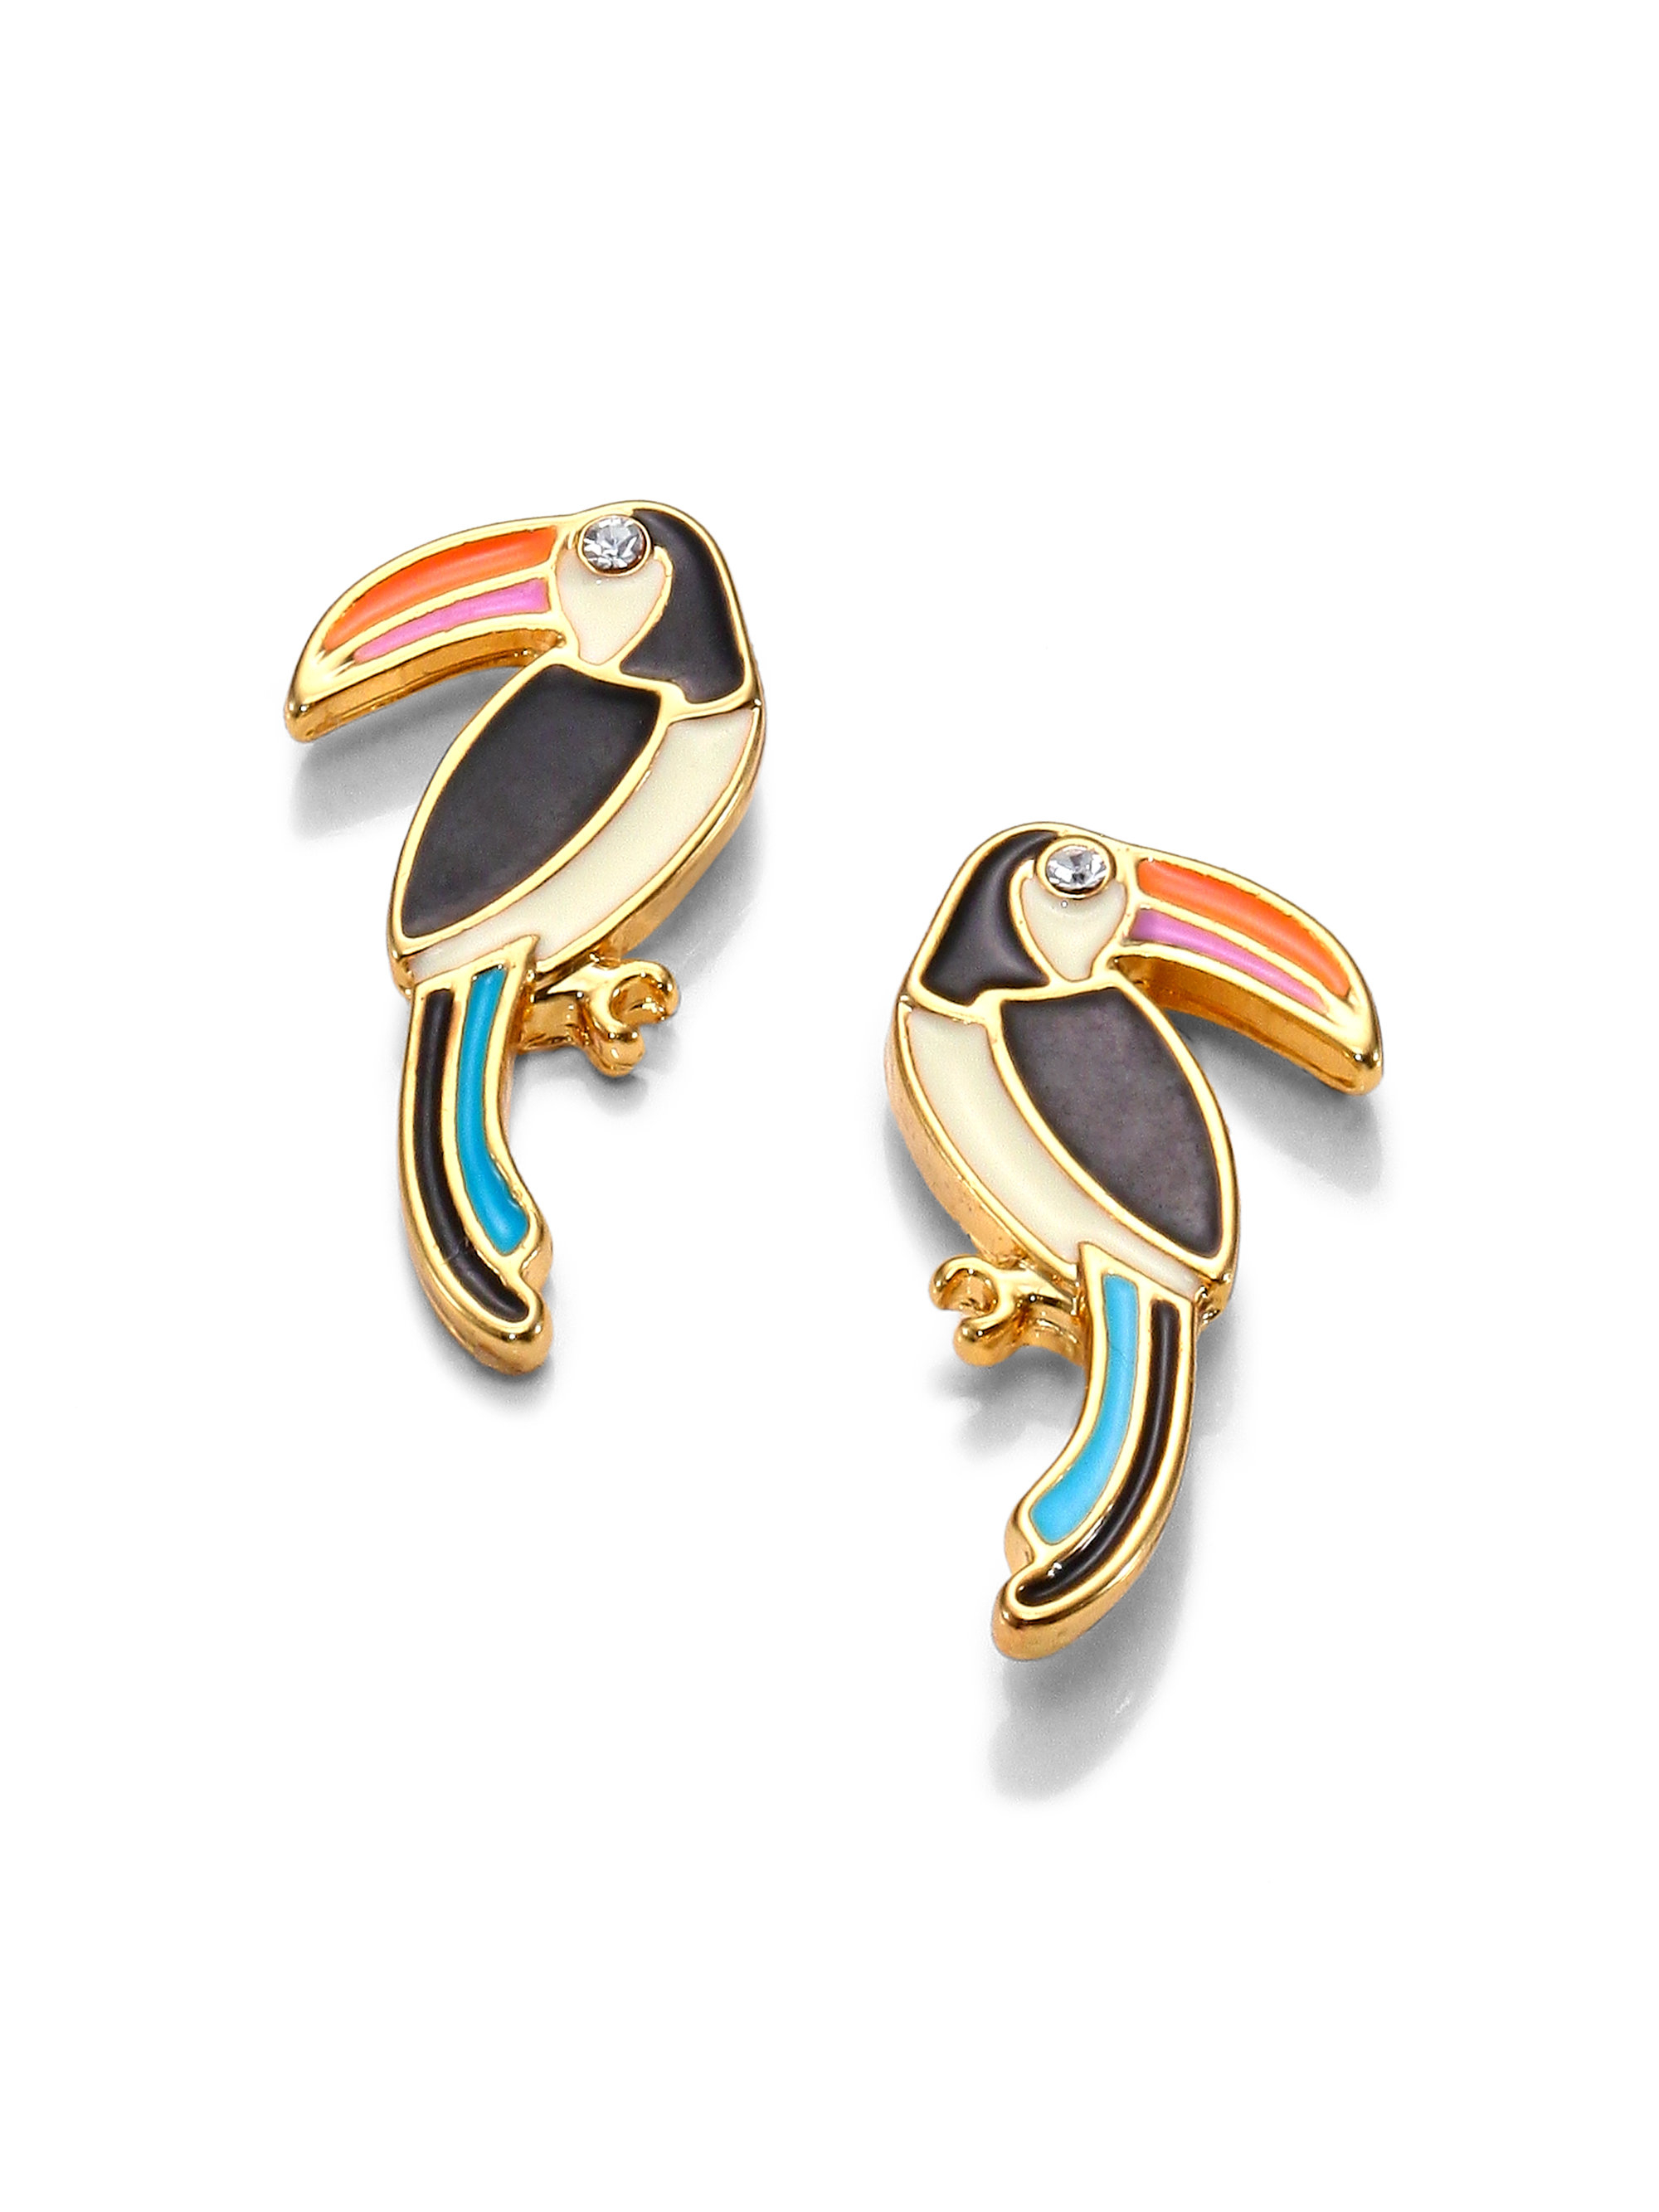 vitreous pin jewelry enamelart madhunt earrings enamel